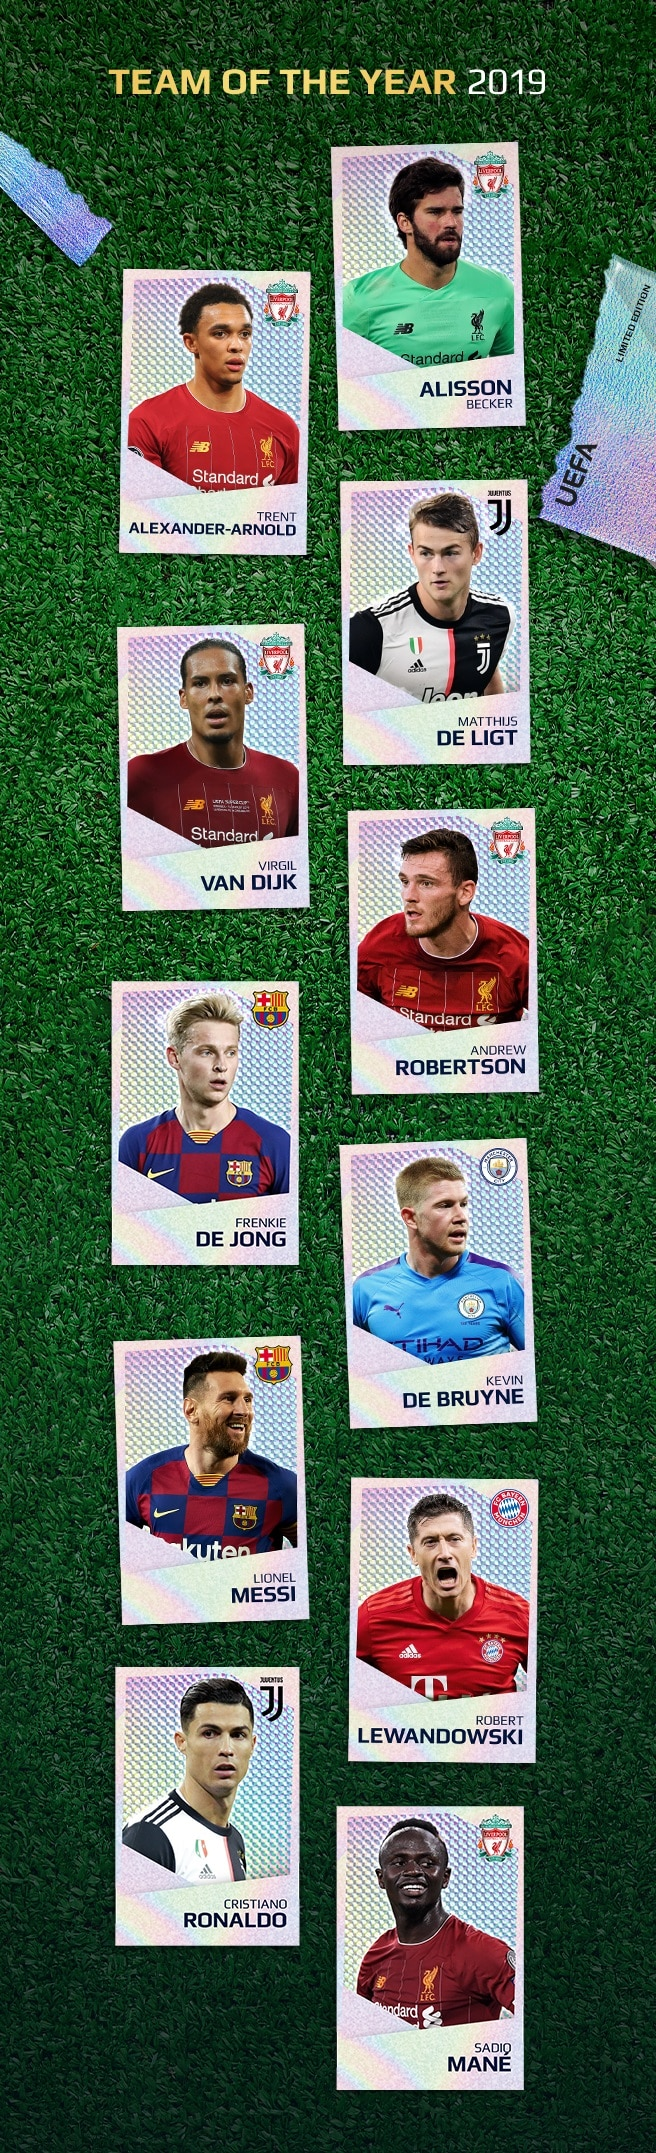 UEFA.com fans' Team of the Year 2019